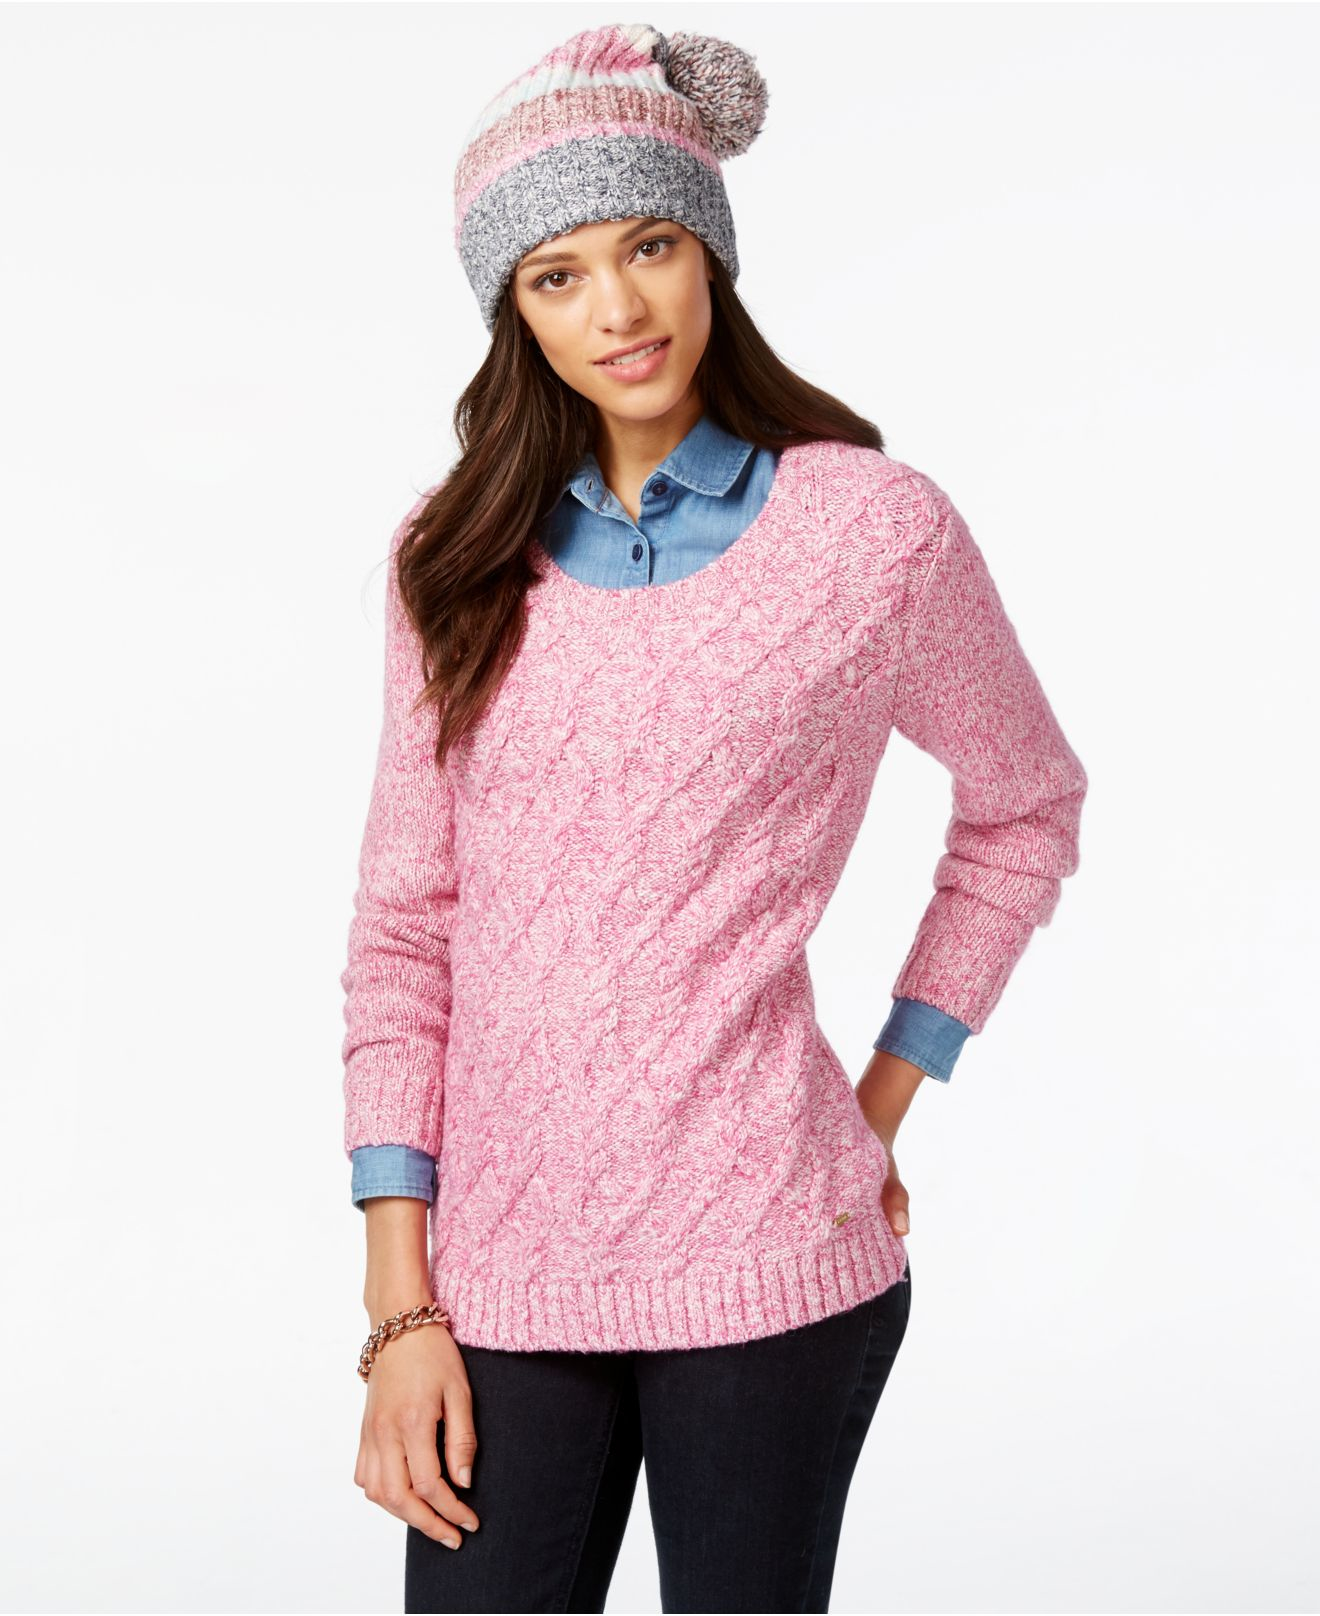 8959403ab56d Lyst - Tommy Hilfiger Cable-knit Sweater   Pom-pom Hat Gift Set in Pink